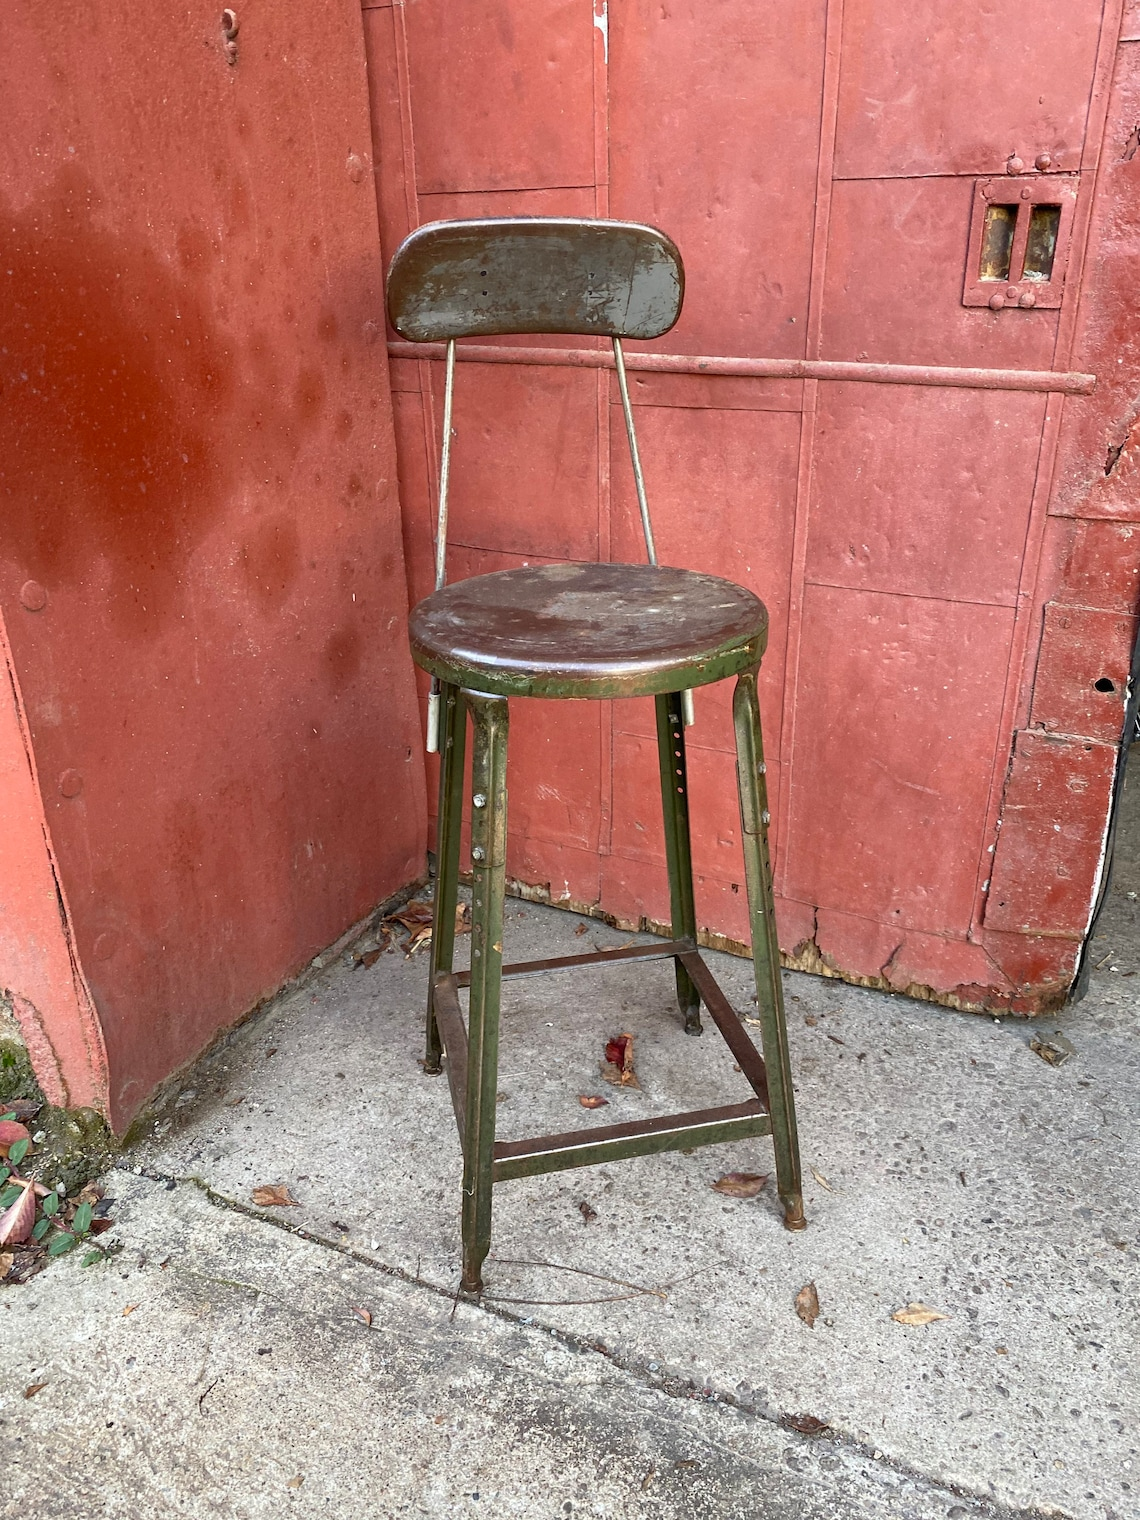 1930s Industrial Angle Iron Co Draftsman Stool Chair Metal Seat and Back Desk Kitchen Office